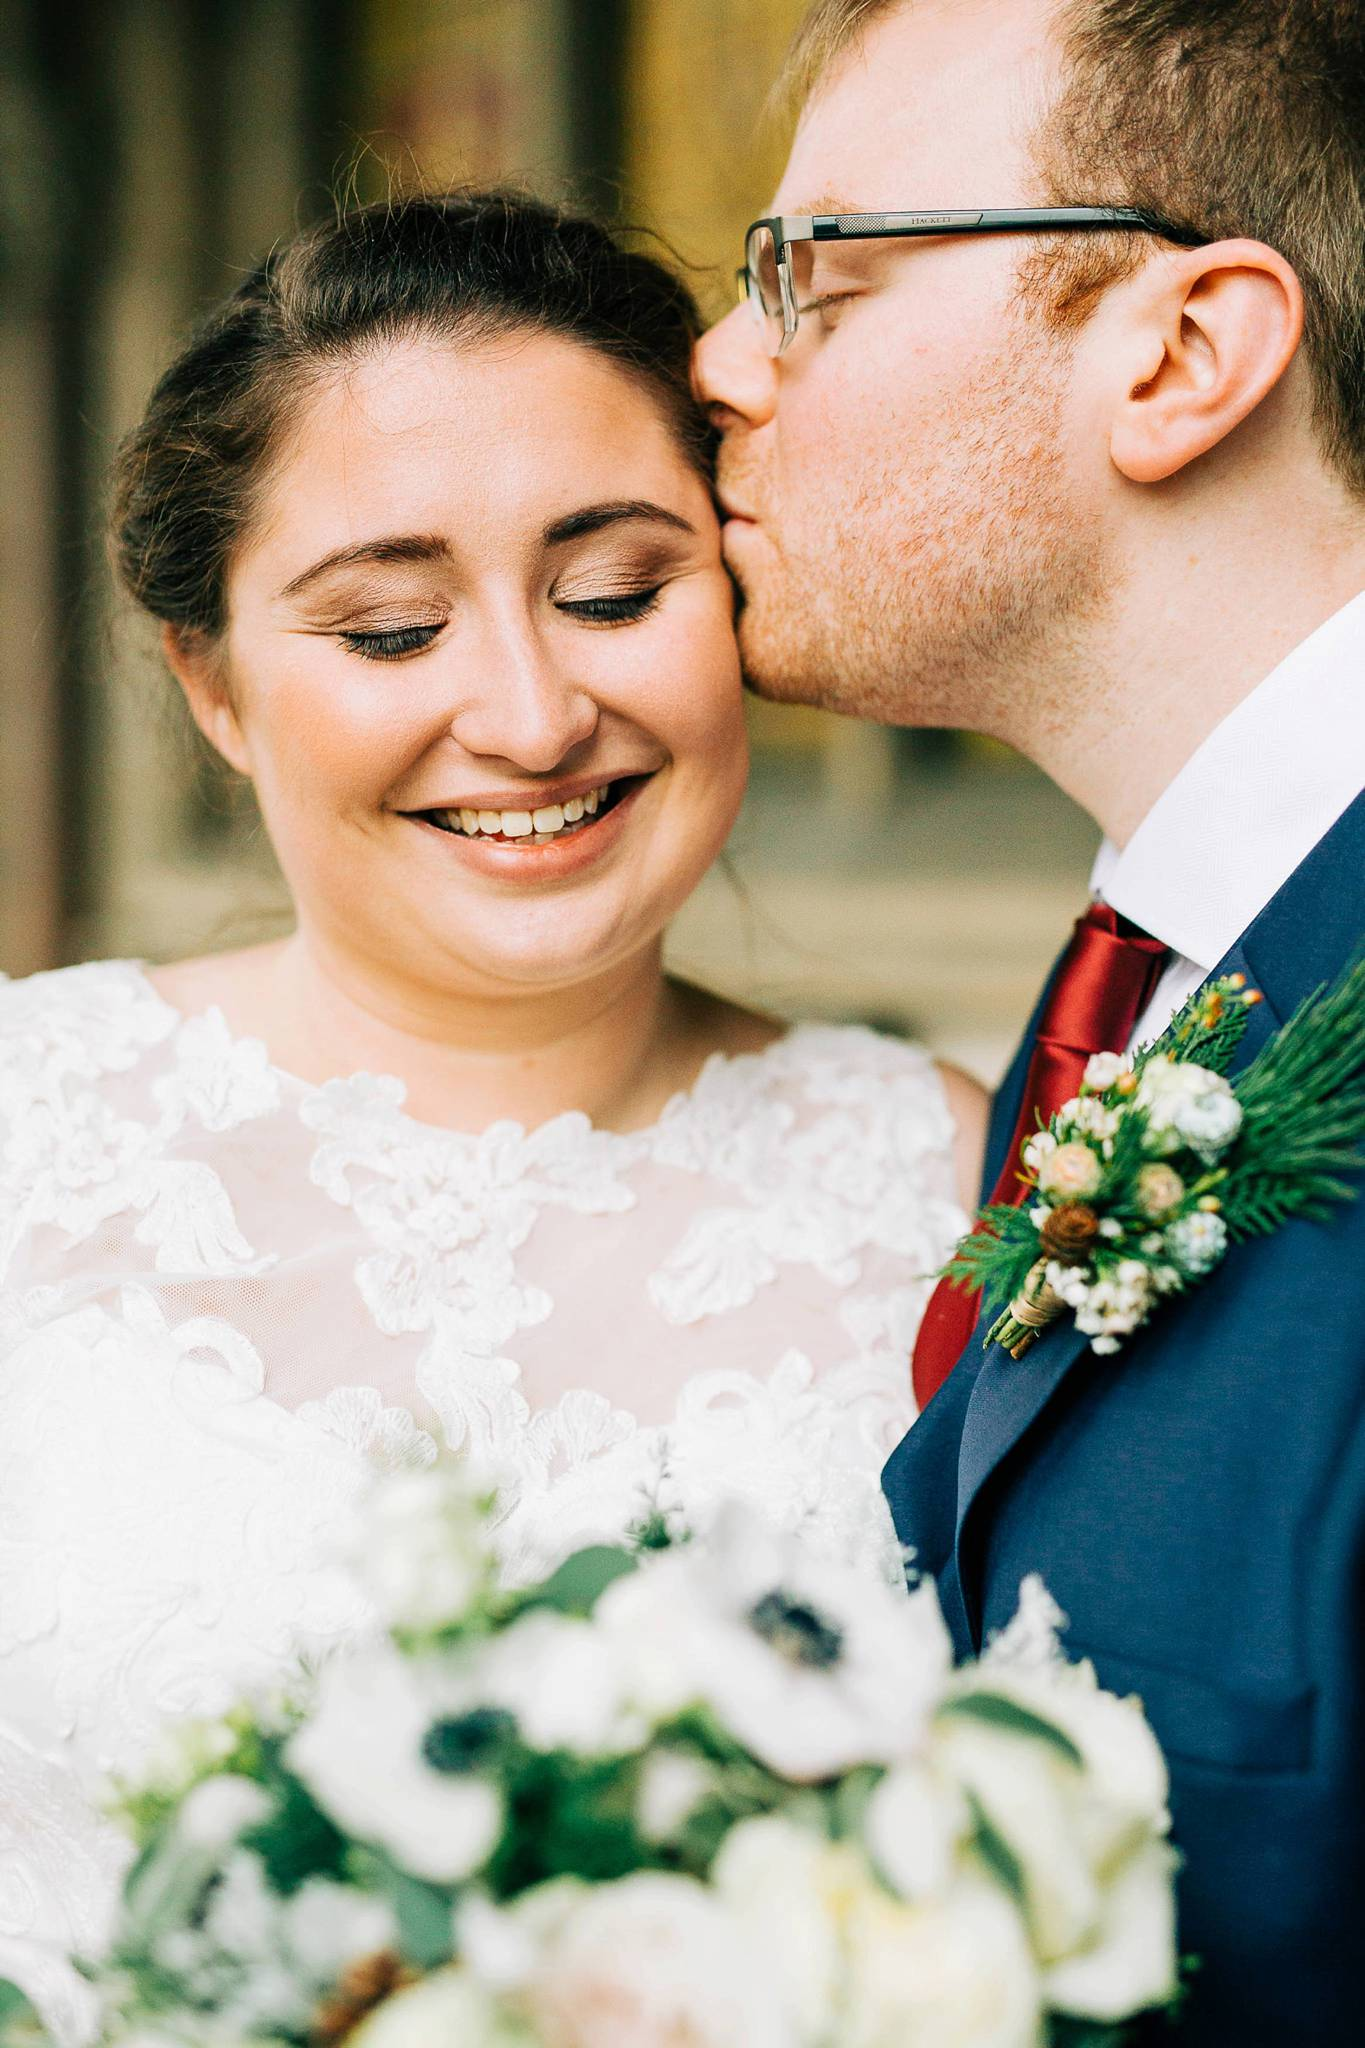 Natural wedding photography Manchester - Clare Robinson Photography_0060.jpg